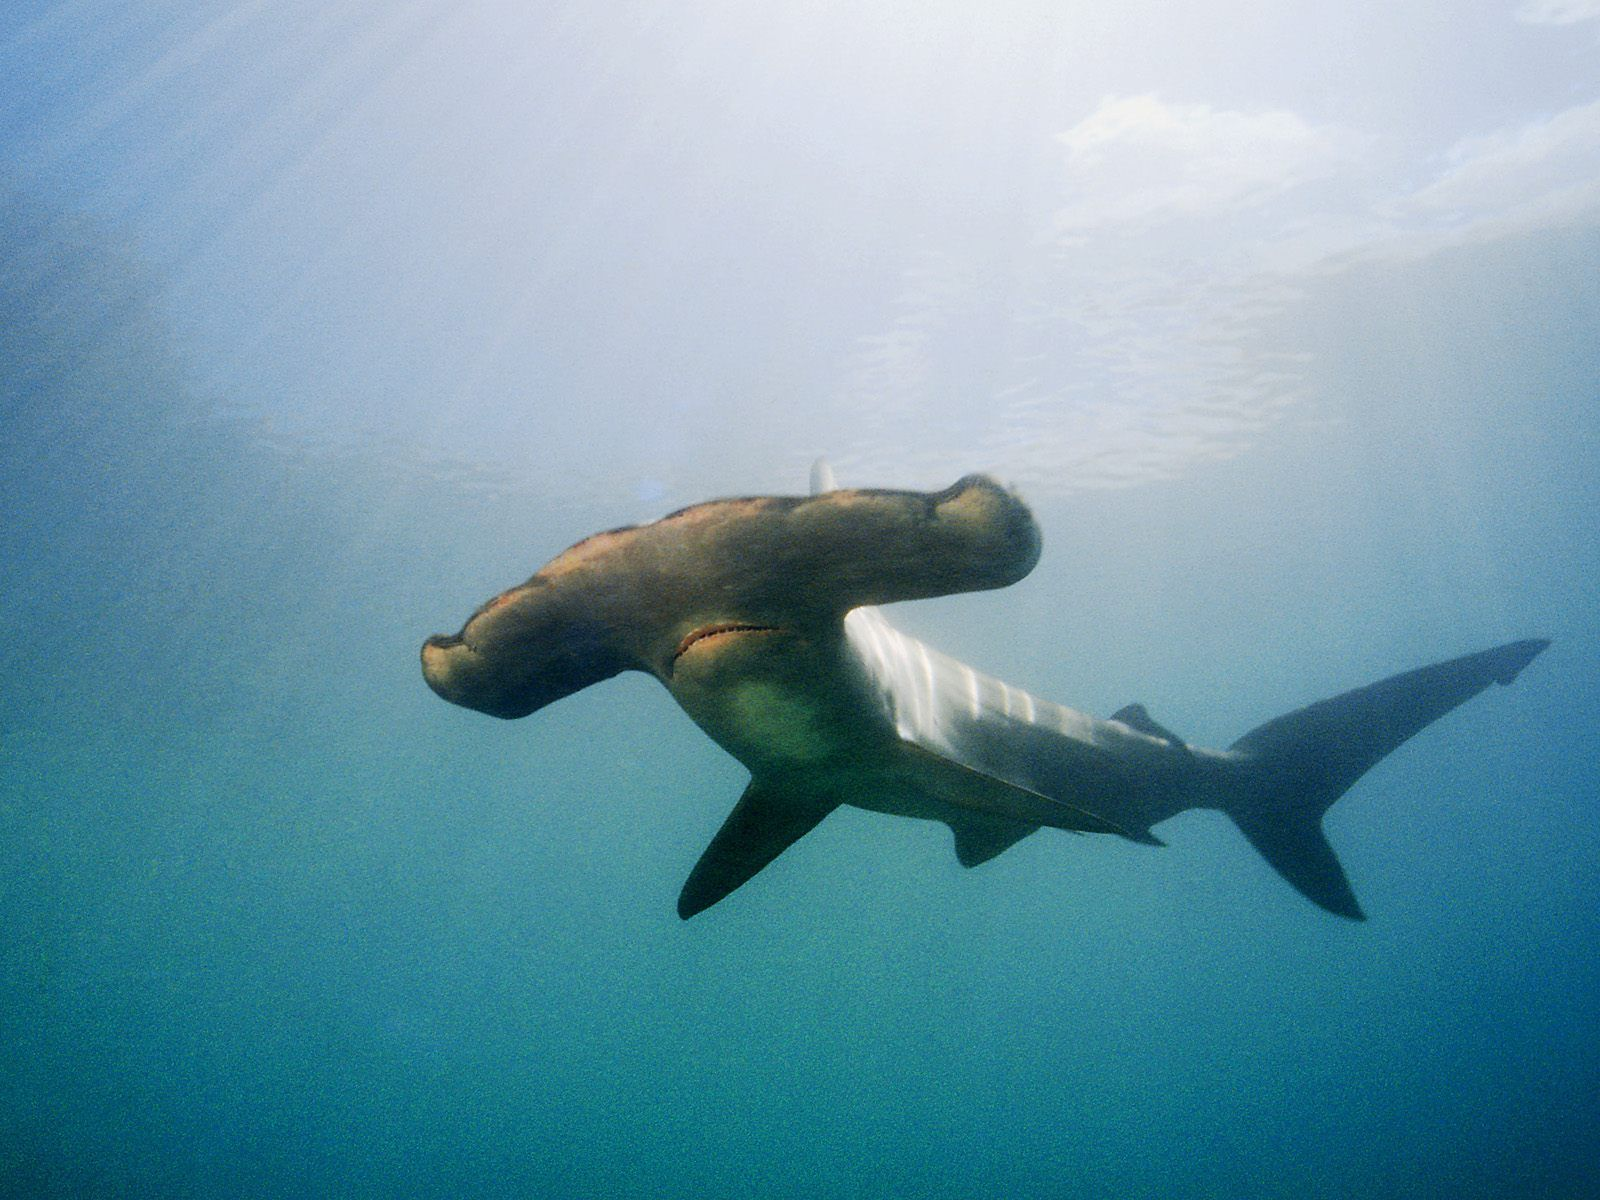 Hammerhead shark - photo#9